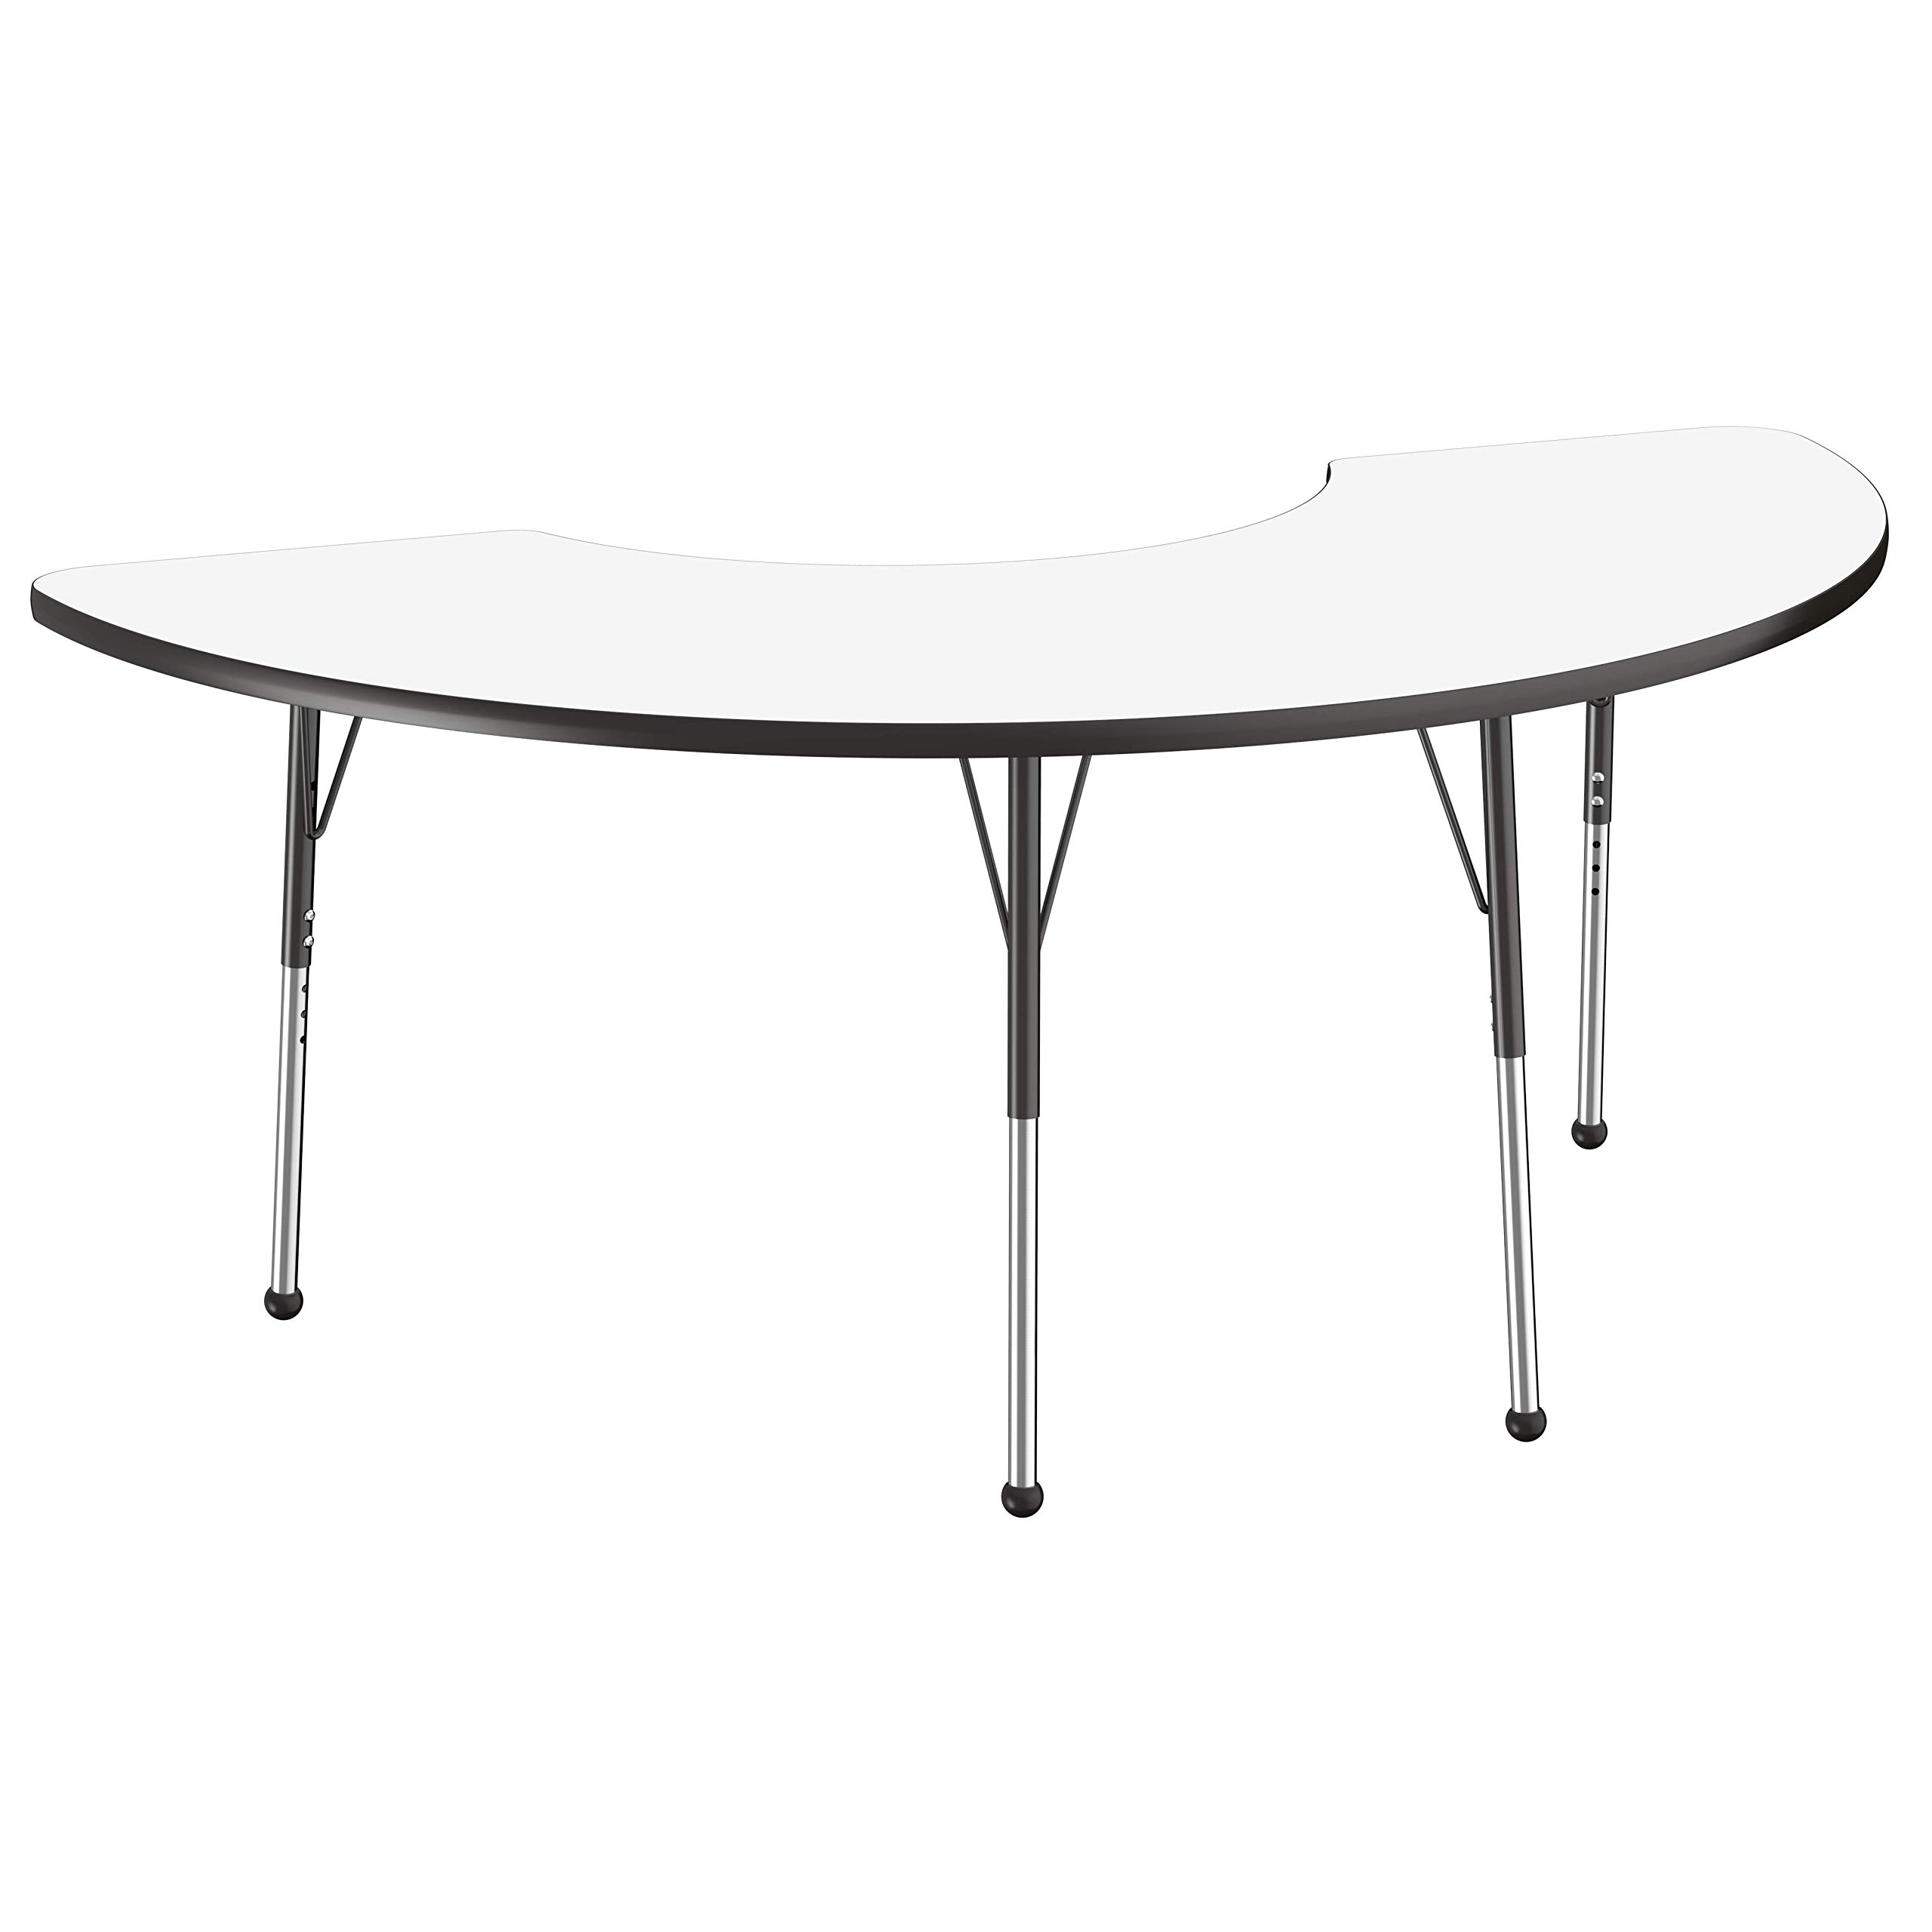 FDP Dry-Erase Half Moon Activity School and Office Table (36 x 72 inch), Standard Legs with Ball Glides for Collaborative Spaces, Adjustable Height 19-30 inches - Whiteboard Top and Black Edge by Factory Direct Partners